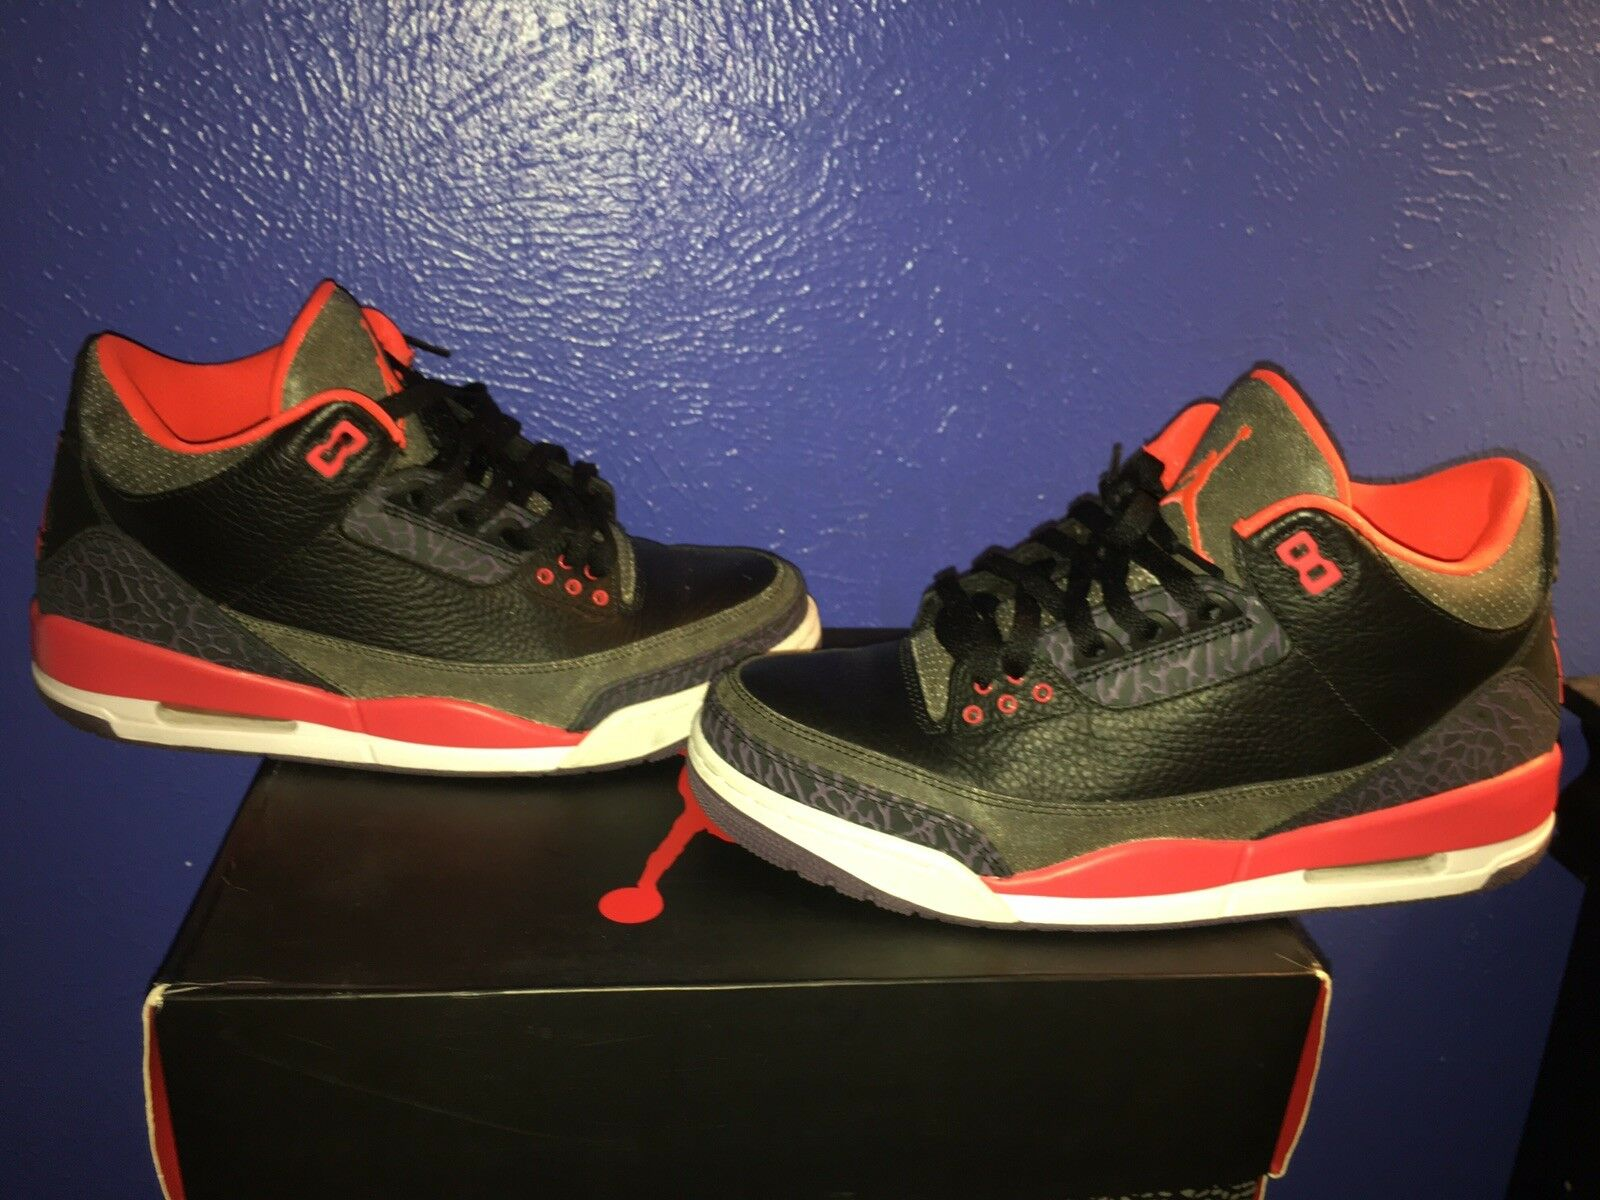 Nike Air Jordan Retro 3 Black Red Bright Crimson Purple White SZ 9 (136064-005)